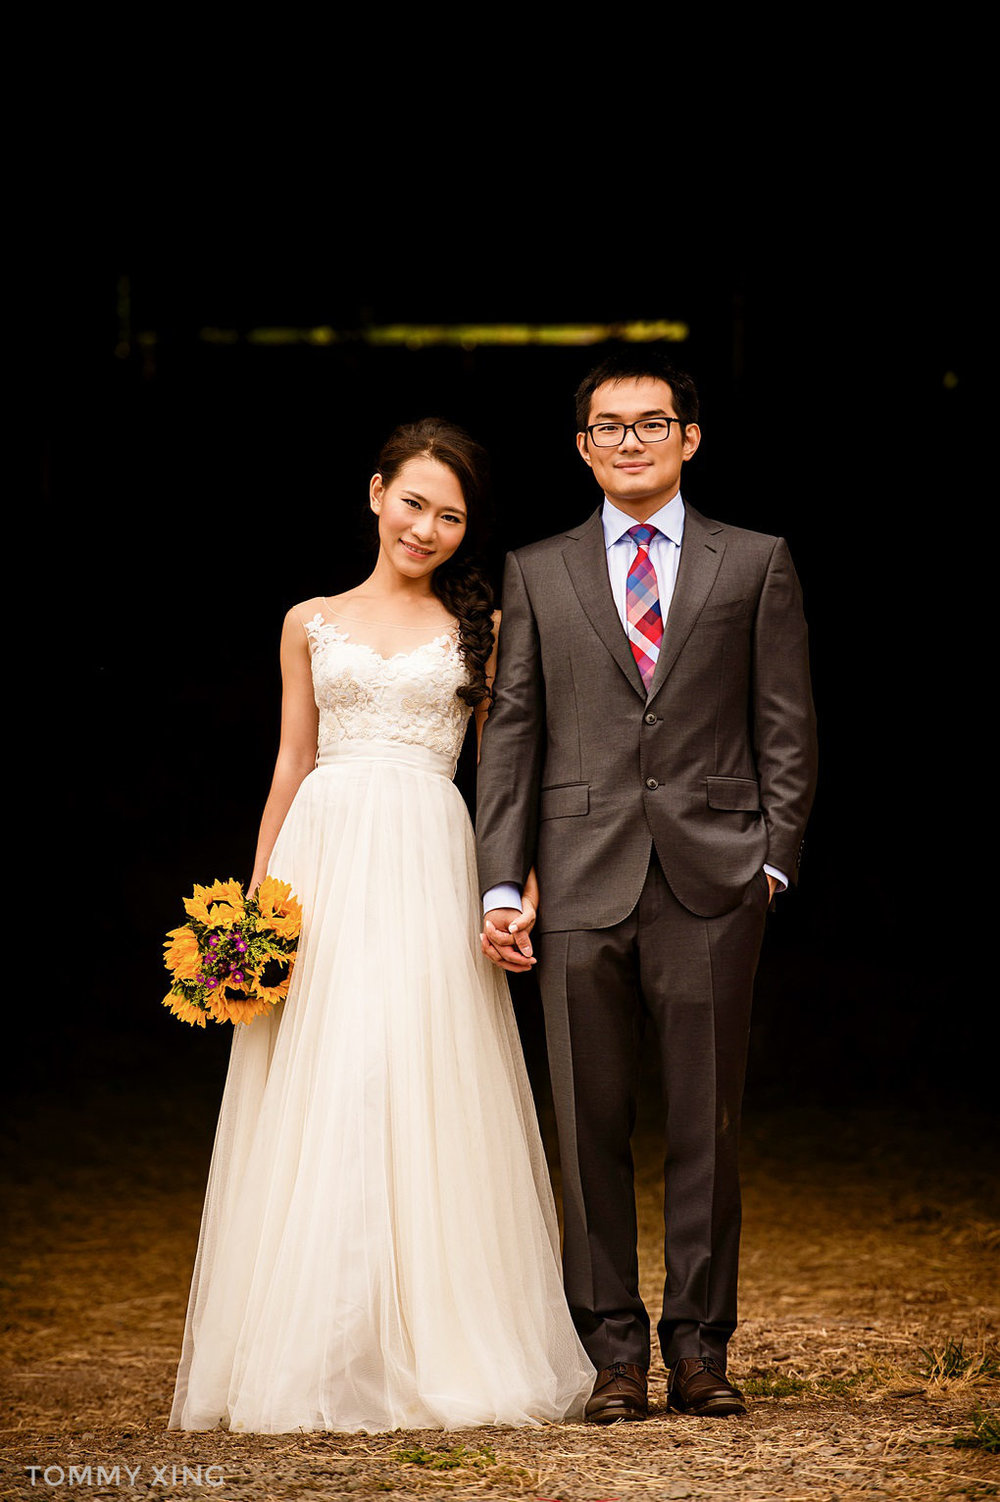 San Francisco per-wedding 旧金山婚纱照 by Tommy Xing Photography 23.jpg